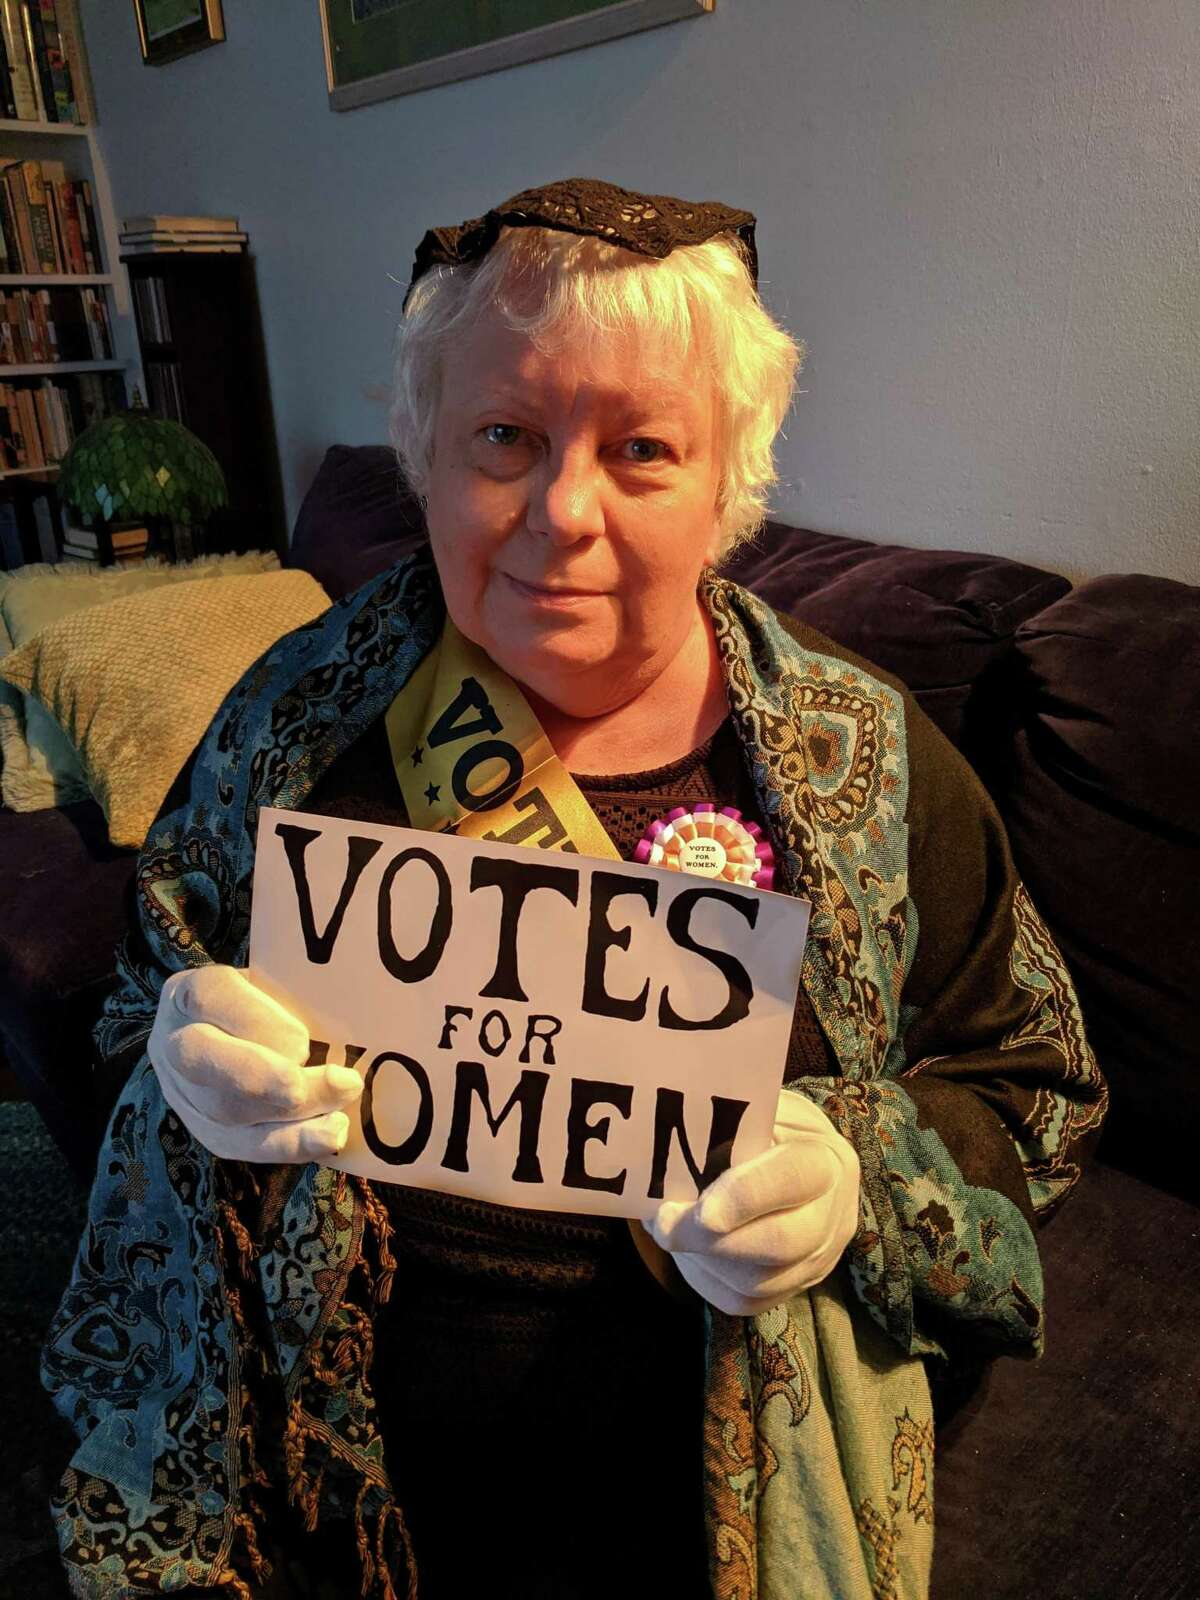 """Lesley Keogh, a Wilton Library staff member, will channel her inner Elizabeth Cady Stanton, a founding mother of the women's suffrage movement in a program titled: """"Visit with Elizabeth Cady Stanton,"""" March 12, from 4 to 5 p.m."""